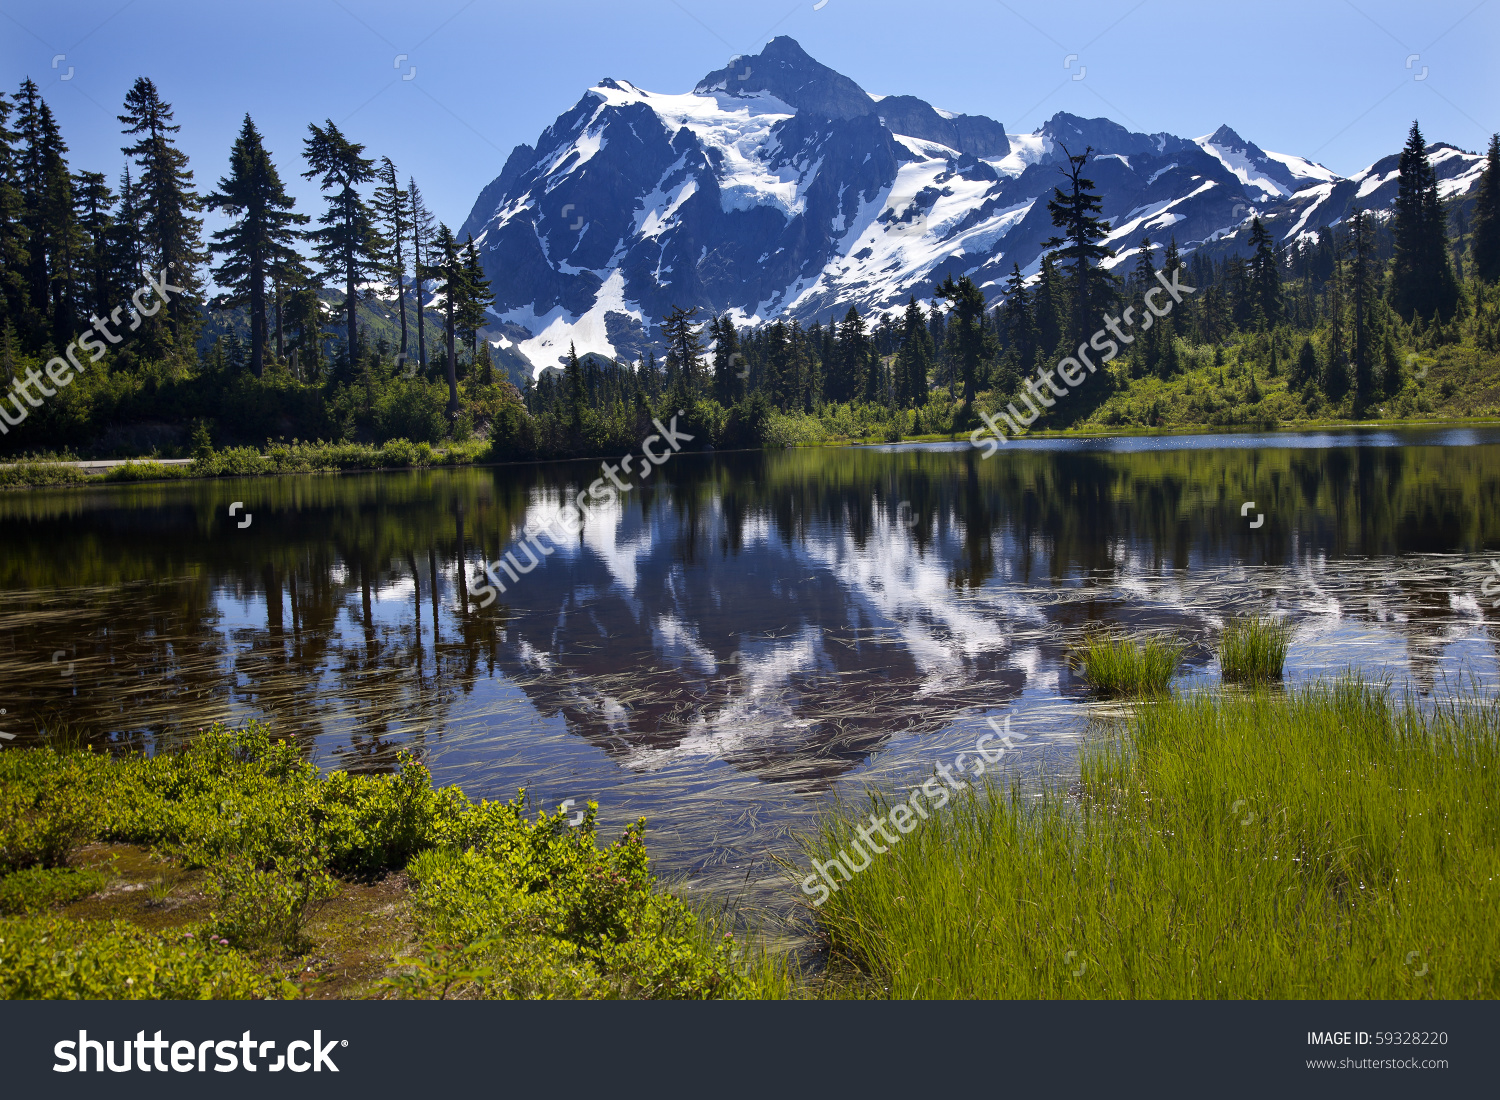 Reflection Lake Mount Shuksan Mount Baker Stock Photo 59328220.